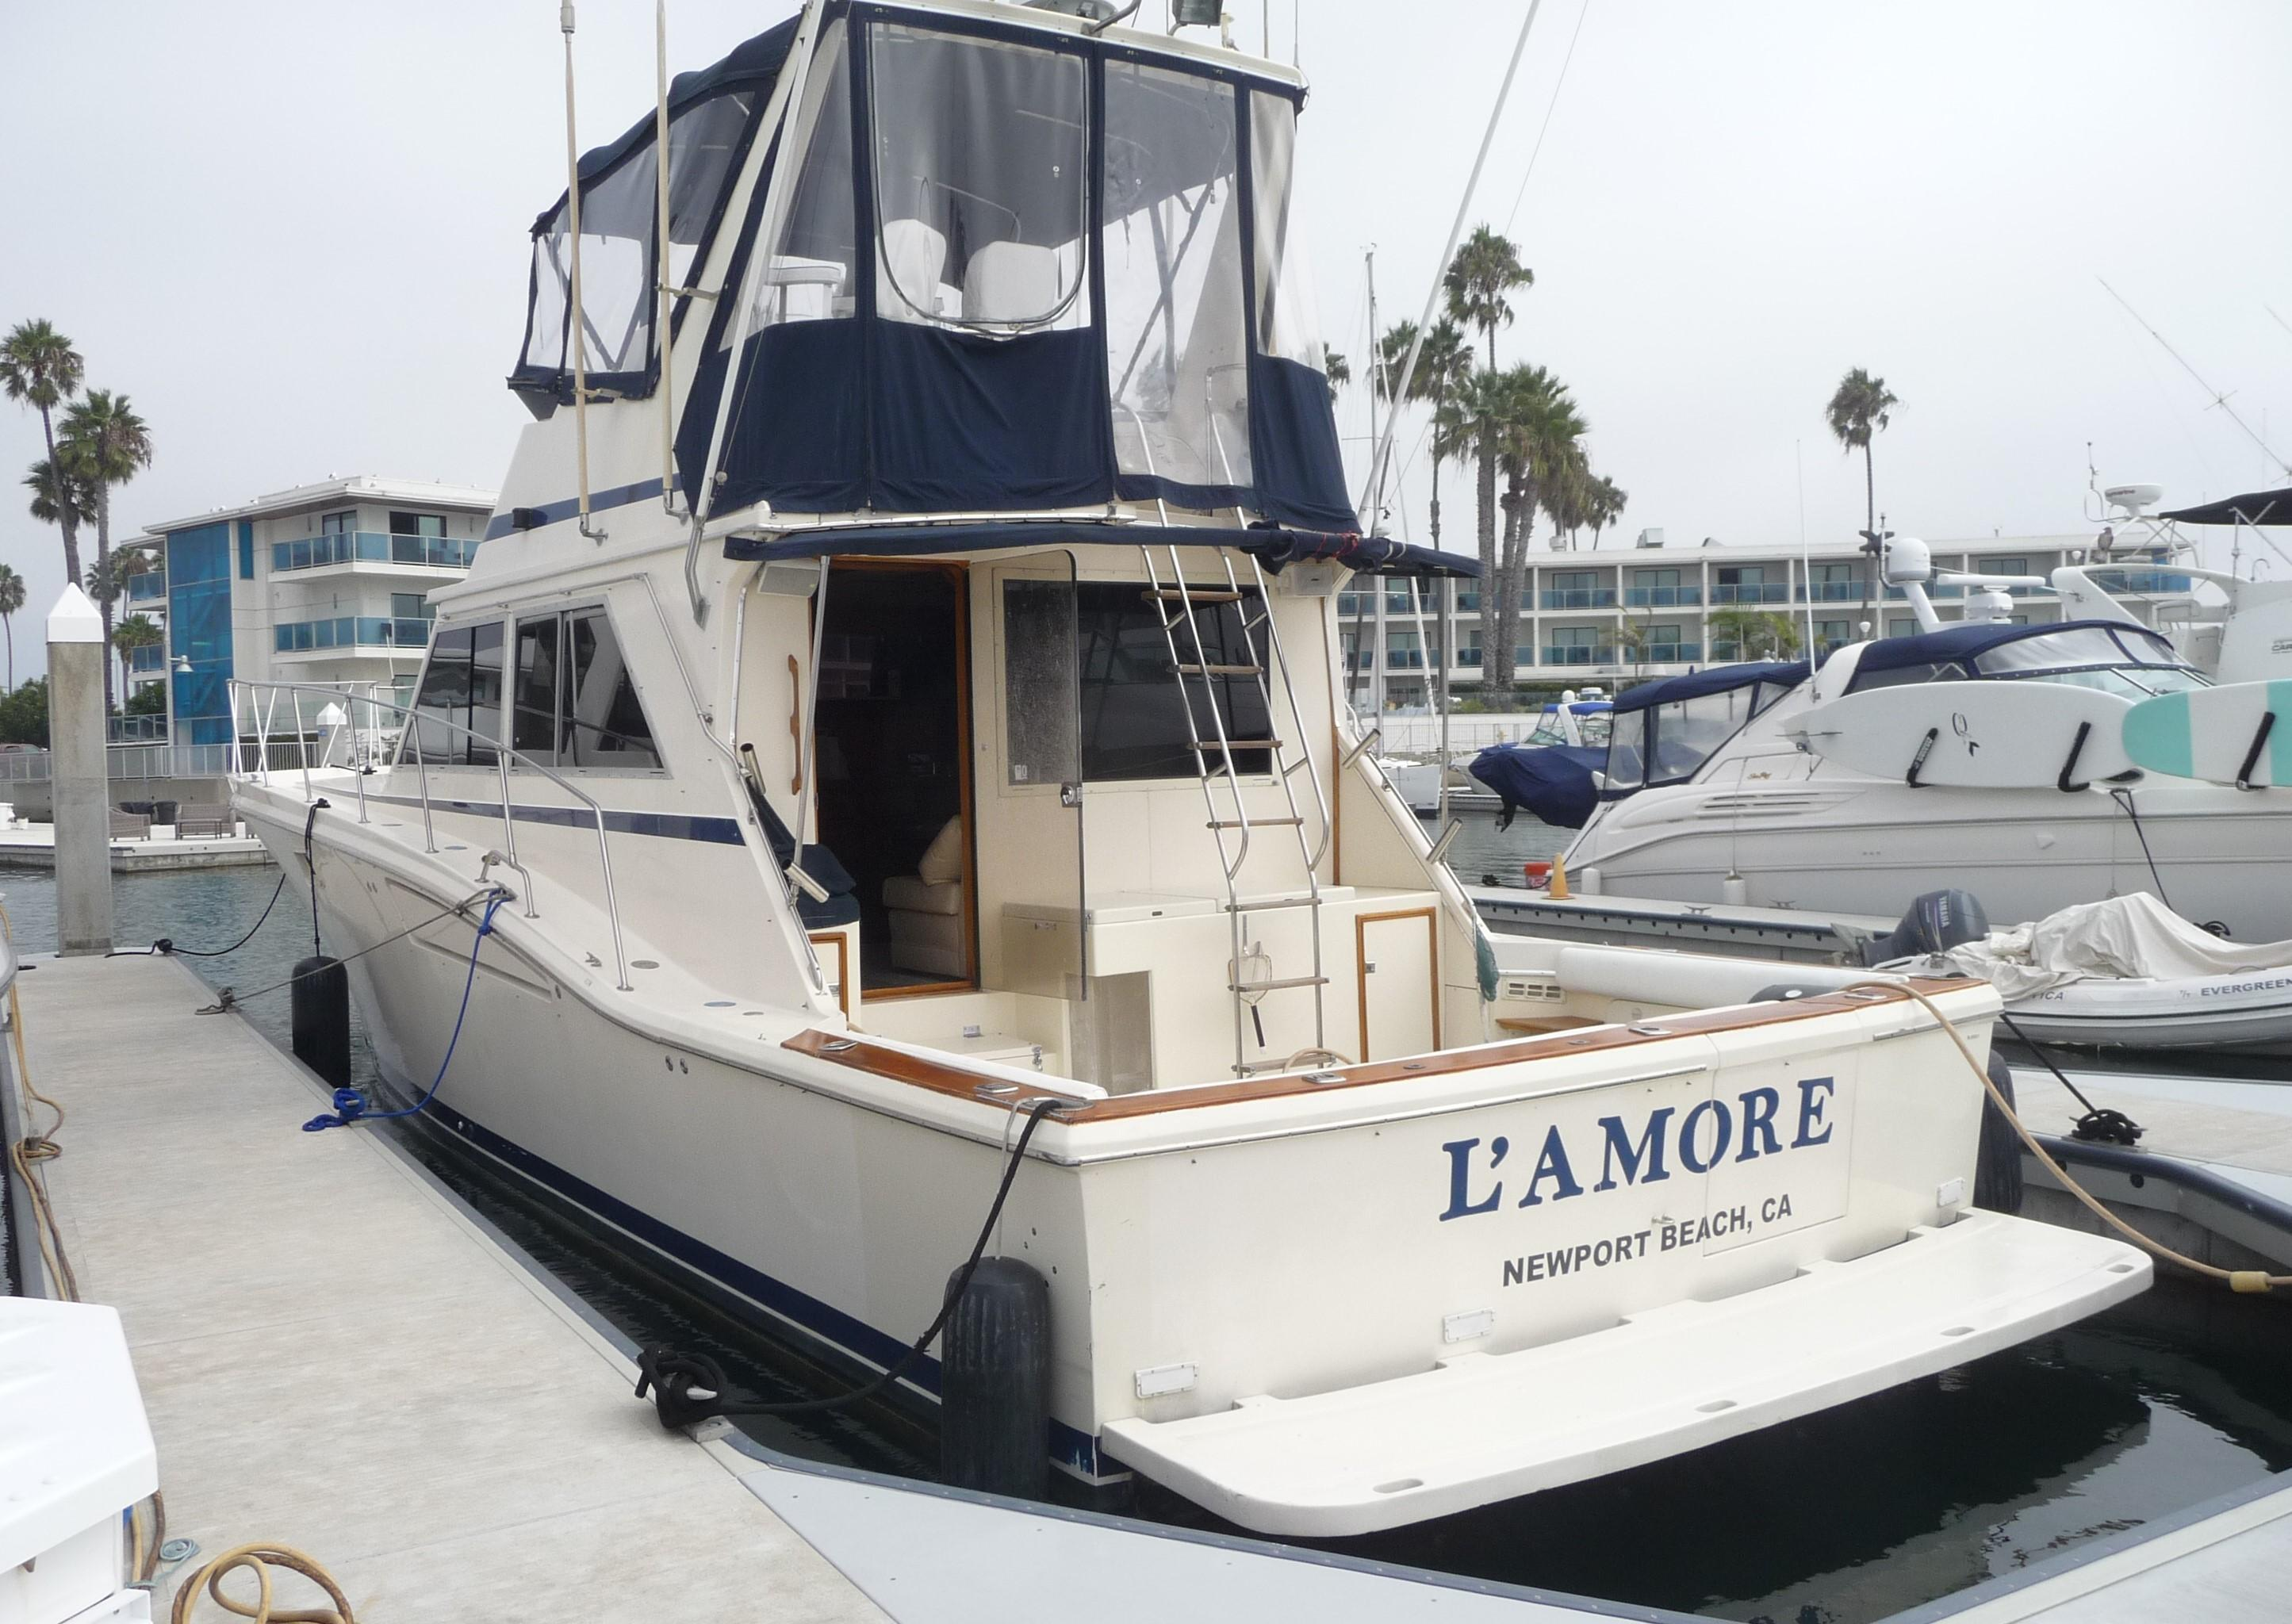 Additional Specs, Equipment And Information: Boat Name. 48' Chris-Craft  Convertible